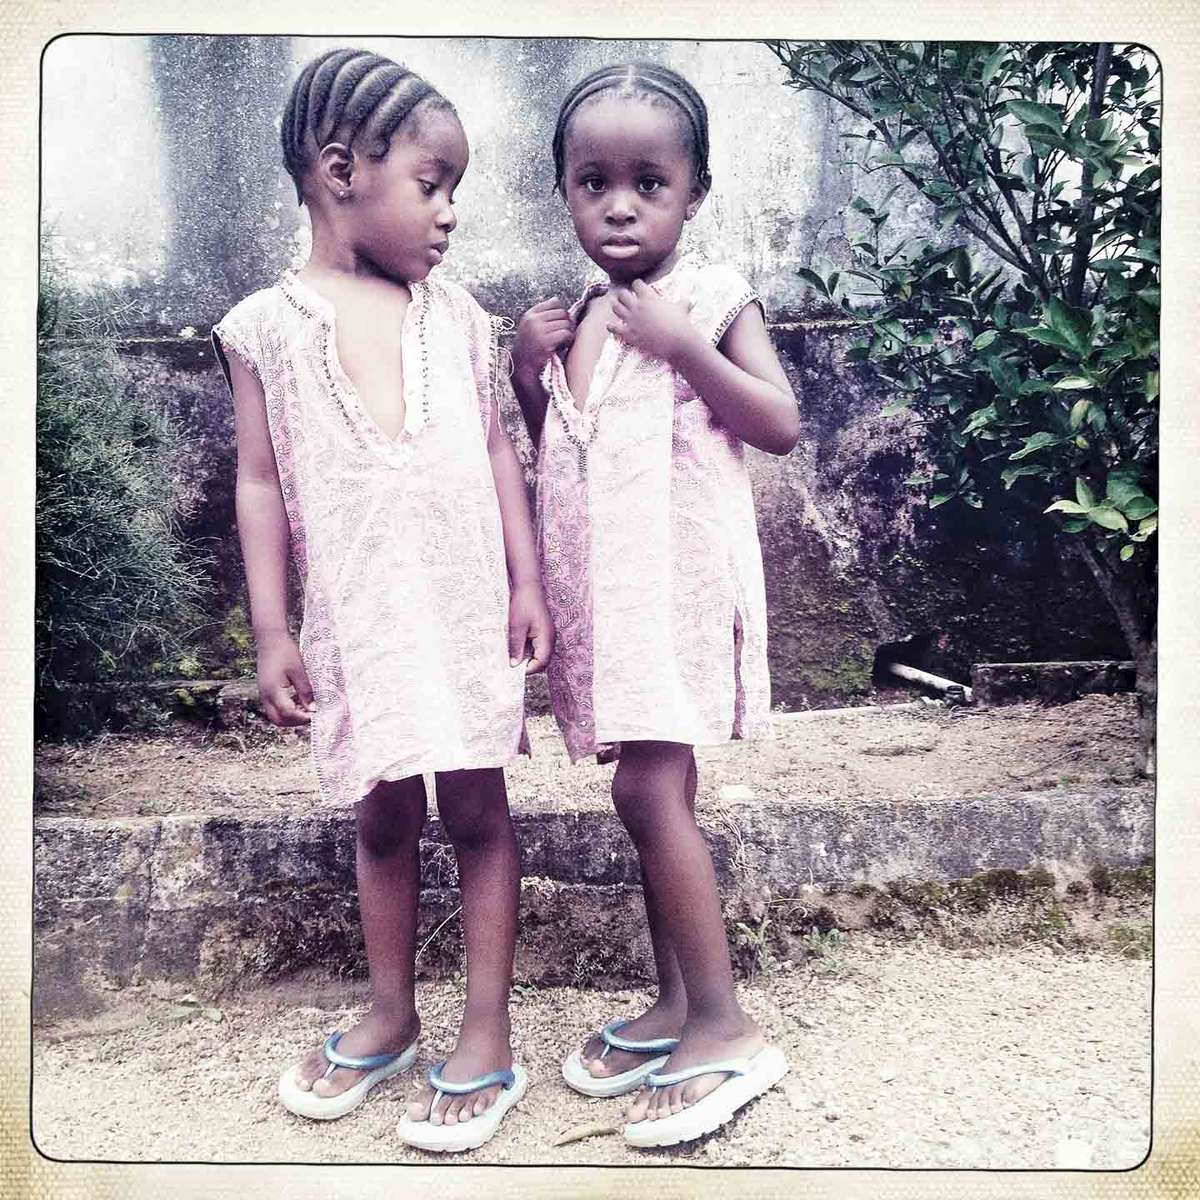 Twins named Flavor and Spice in Jos, Central Nigeria. September 2013.